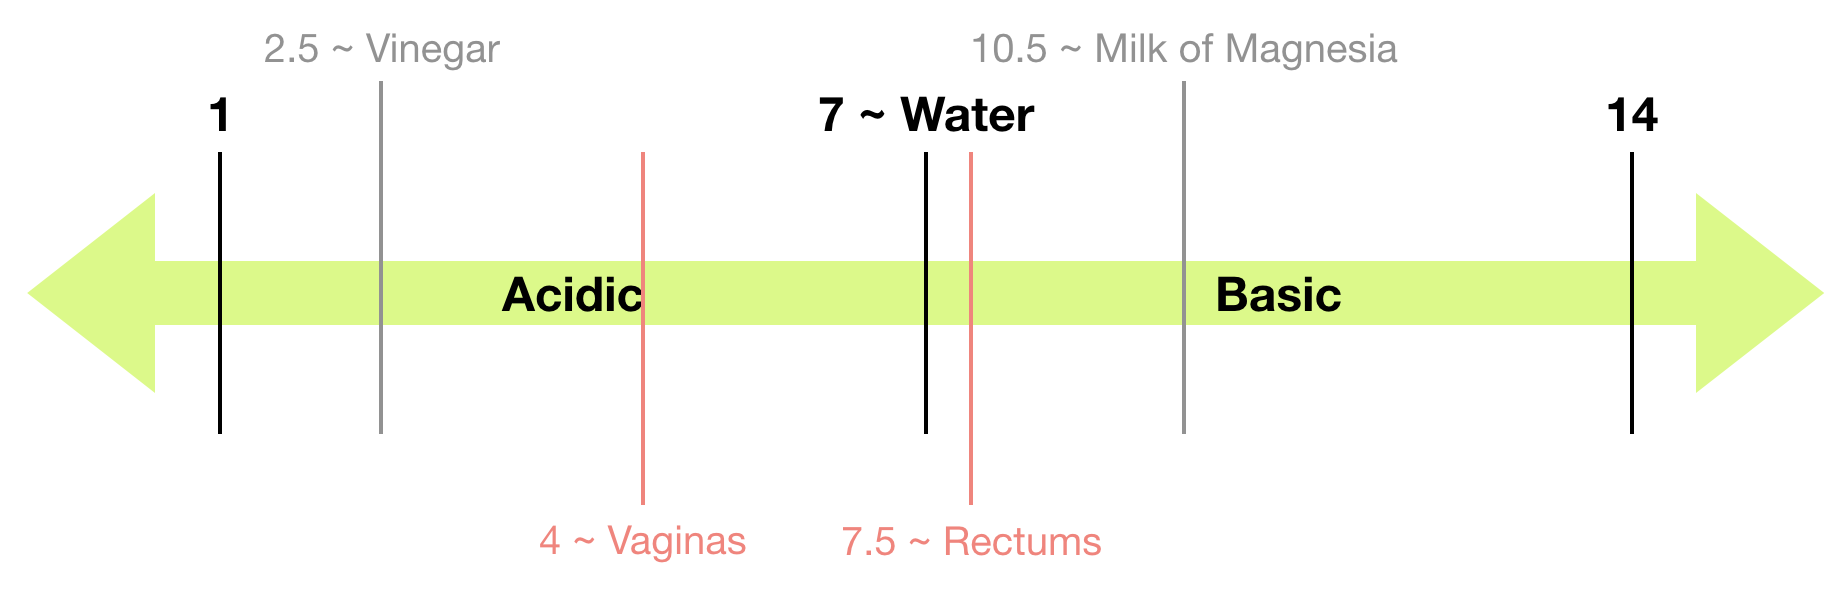 A pH scale detailing vinegar, vaginas, water, rectums, and milk of magnesia for comparison.